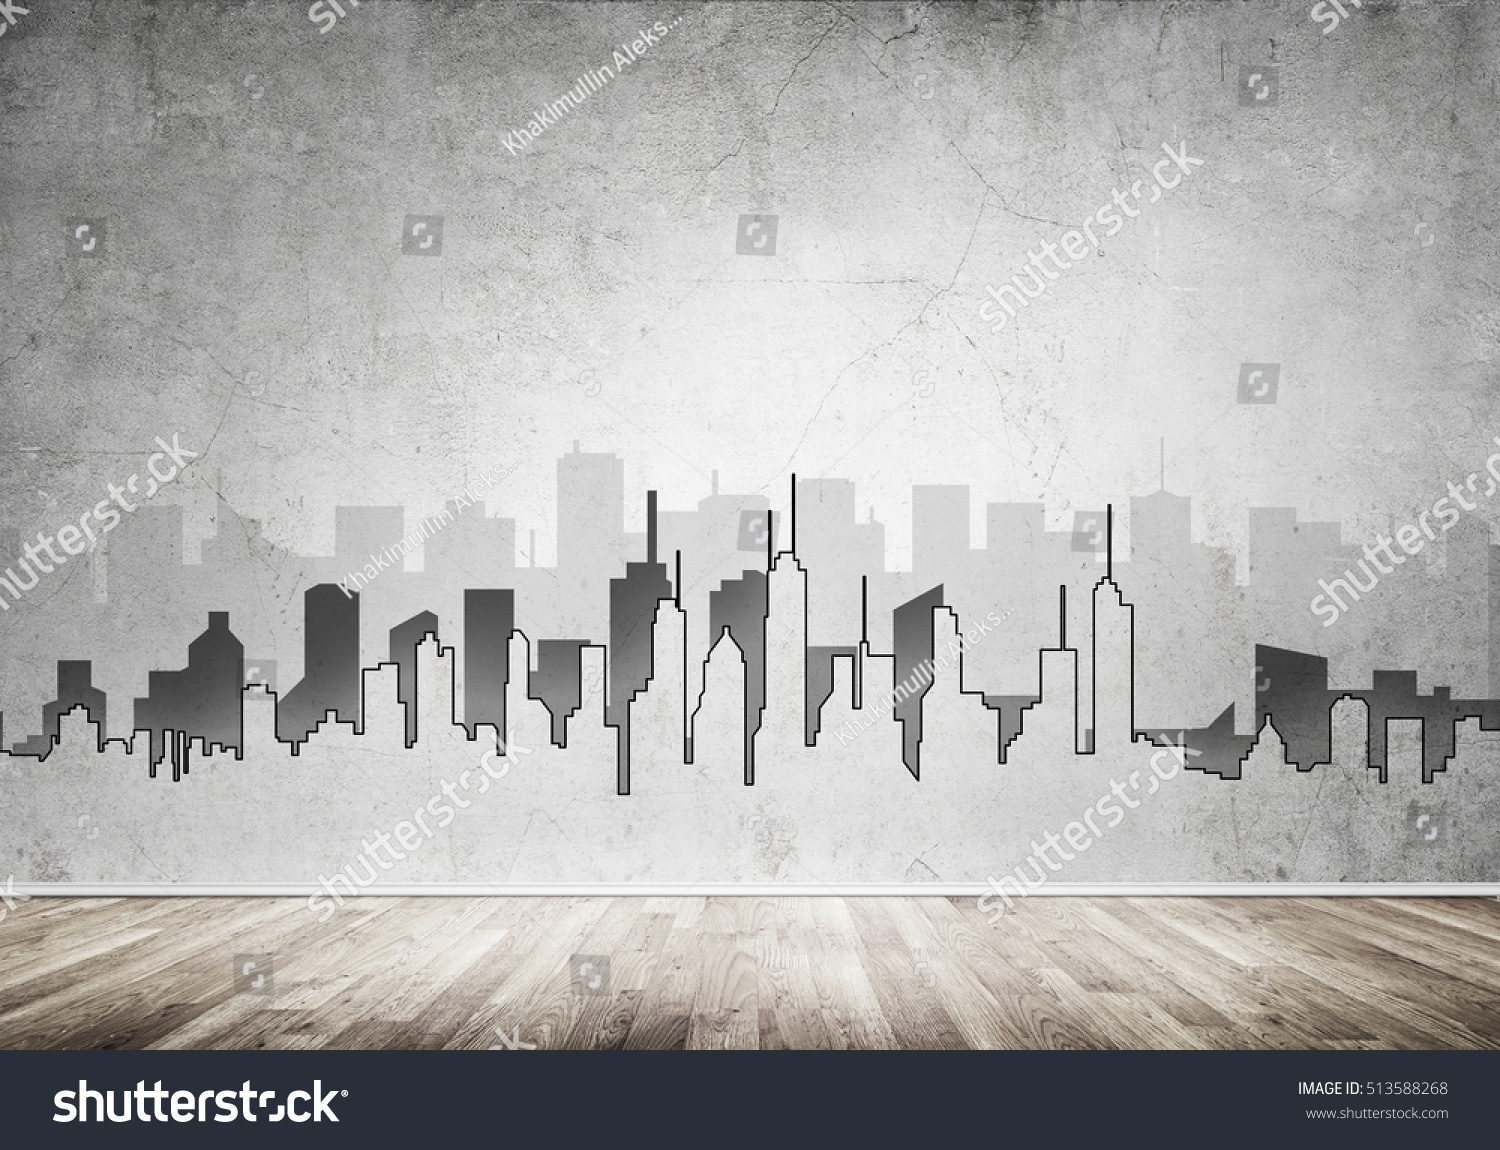 Silhouette Modern City Landscape Drawn On Stock Photo ...